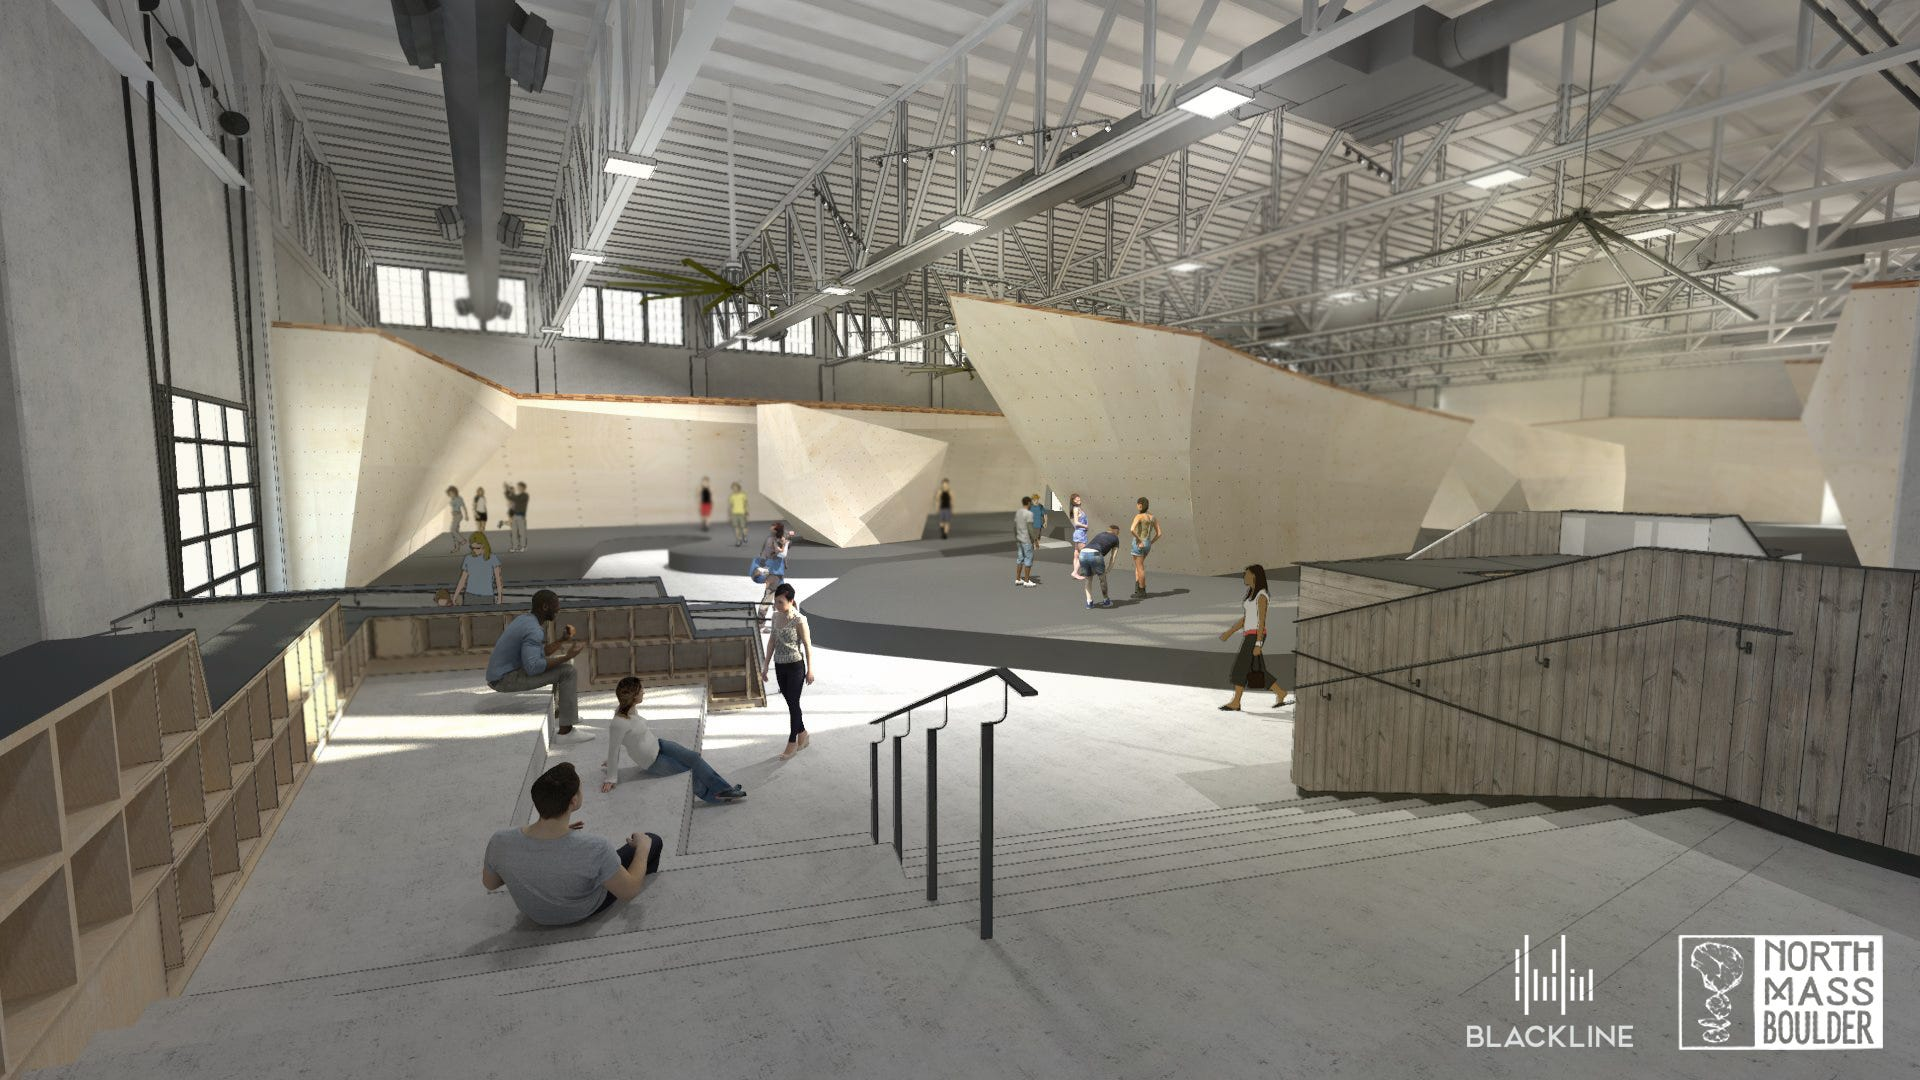 Rock climbing gym for millennials will open north of mass ave